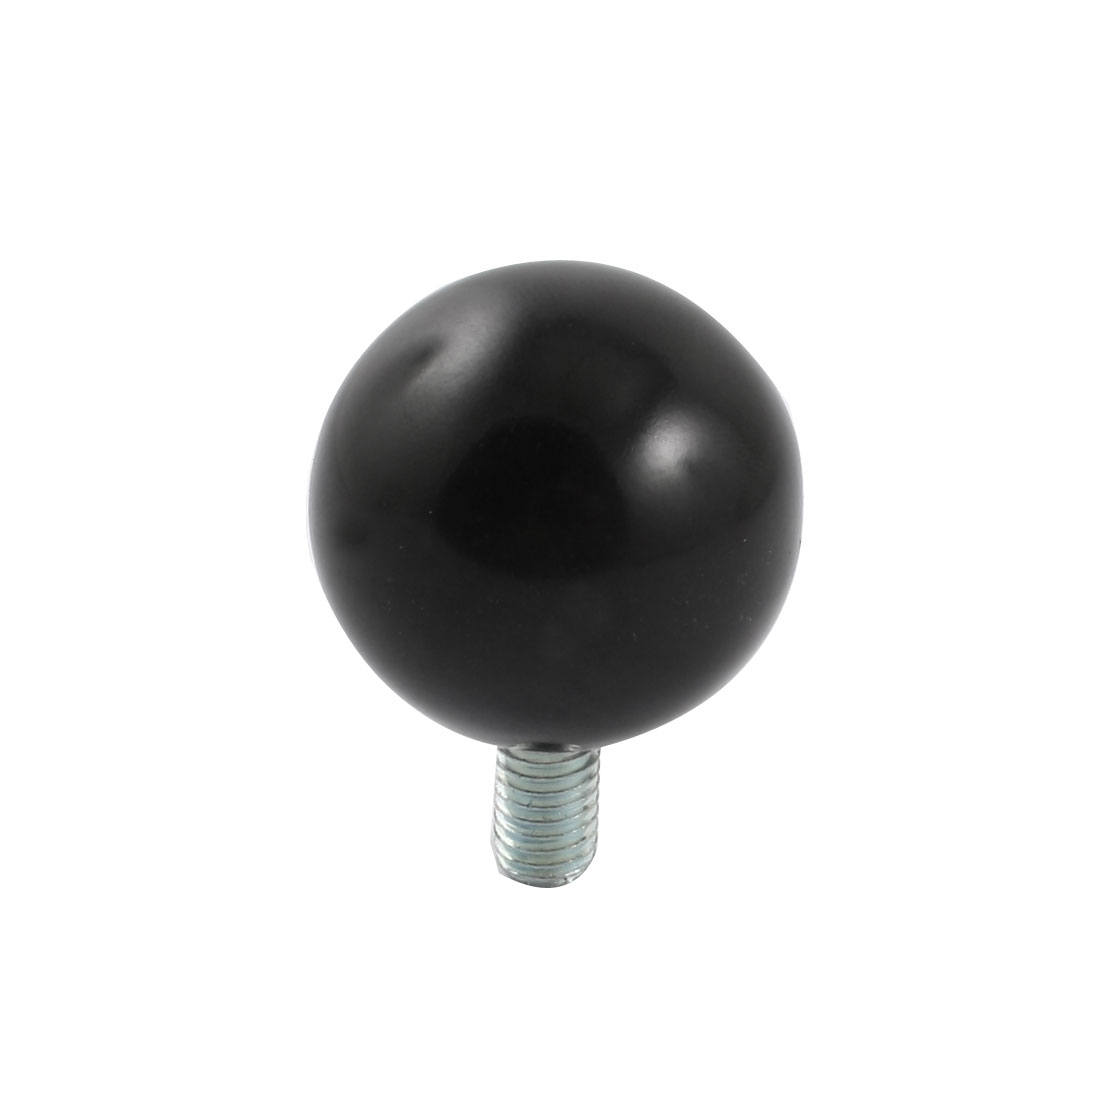 M8x15mm Thread Black Round Plastic 35mm Diameter Ball Lever Knob